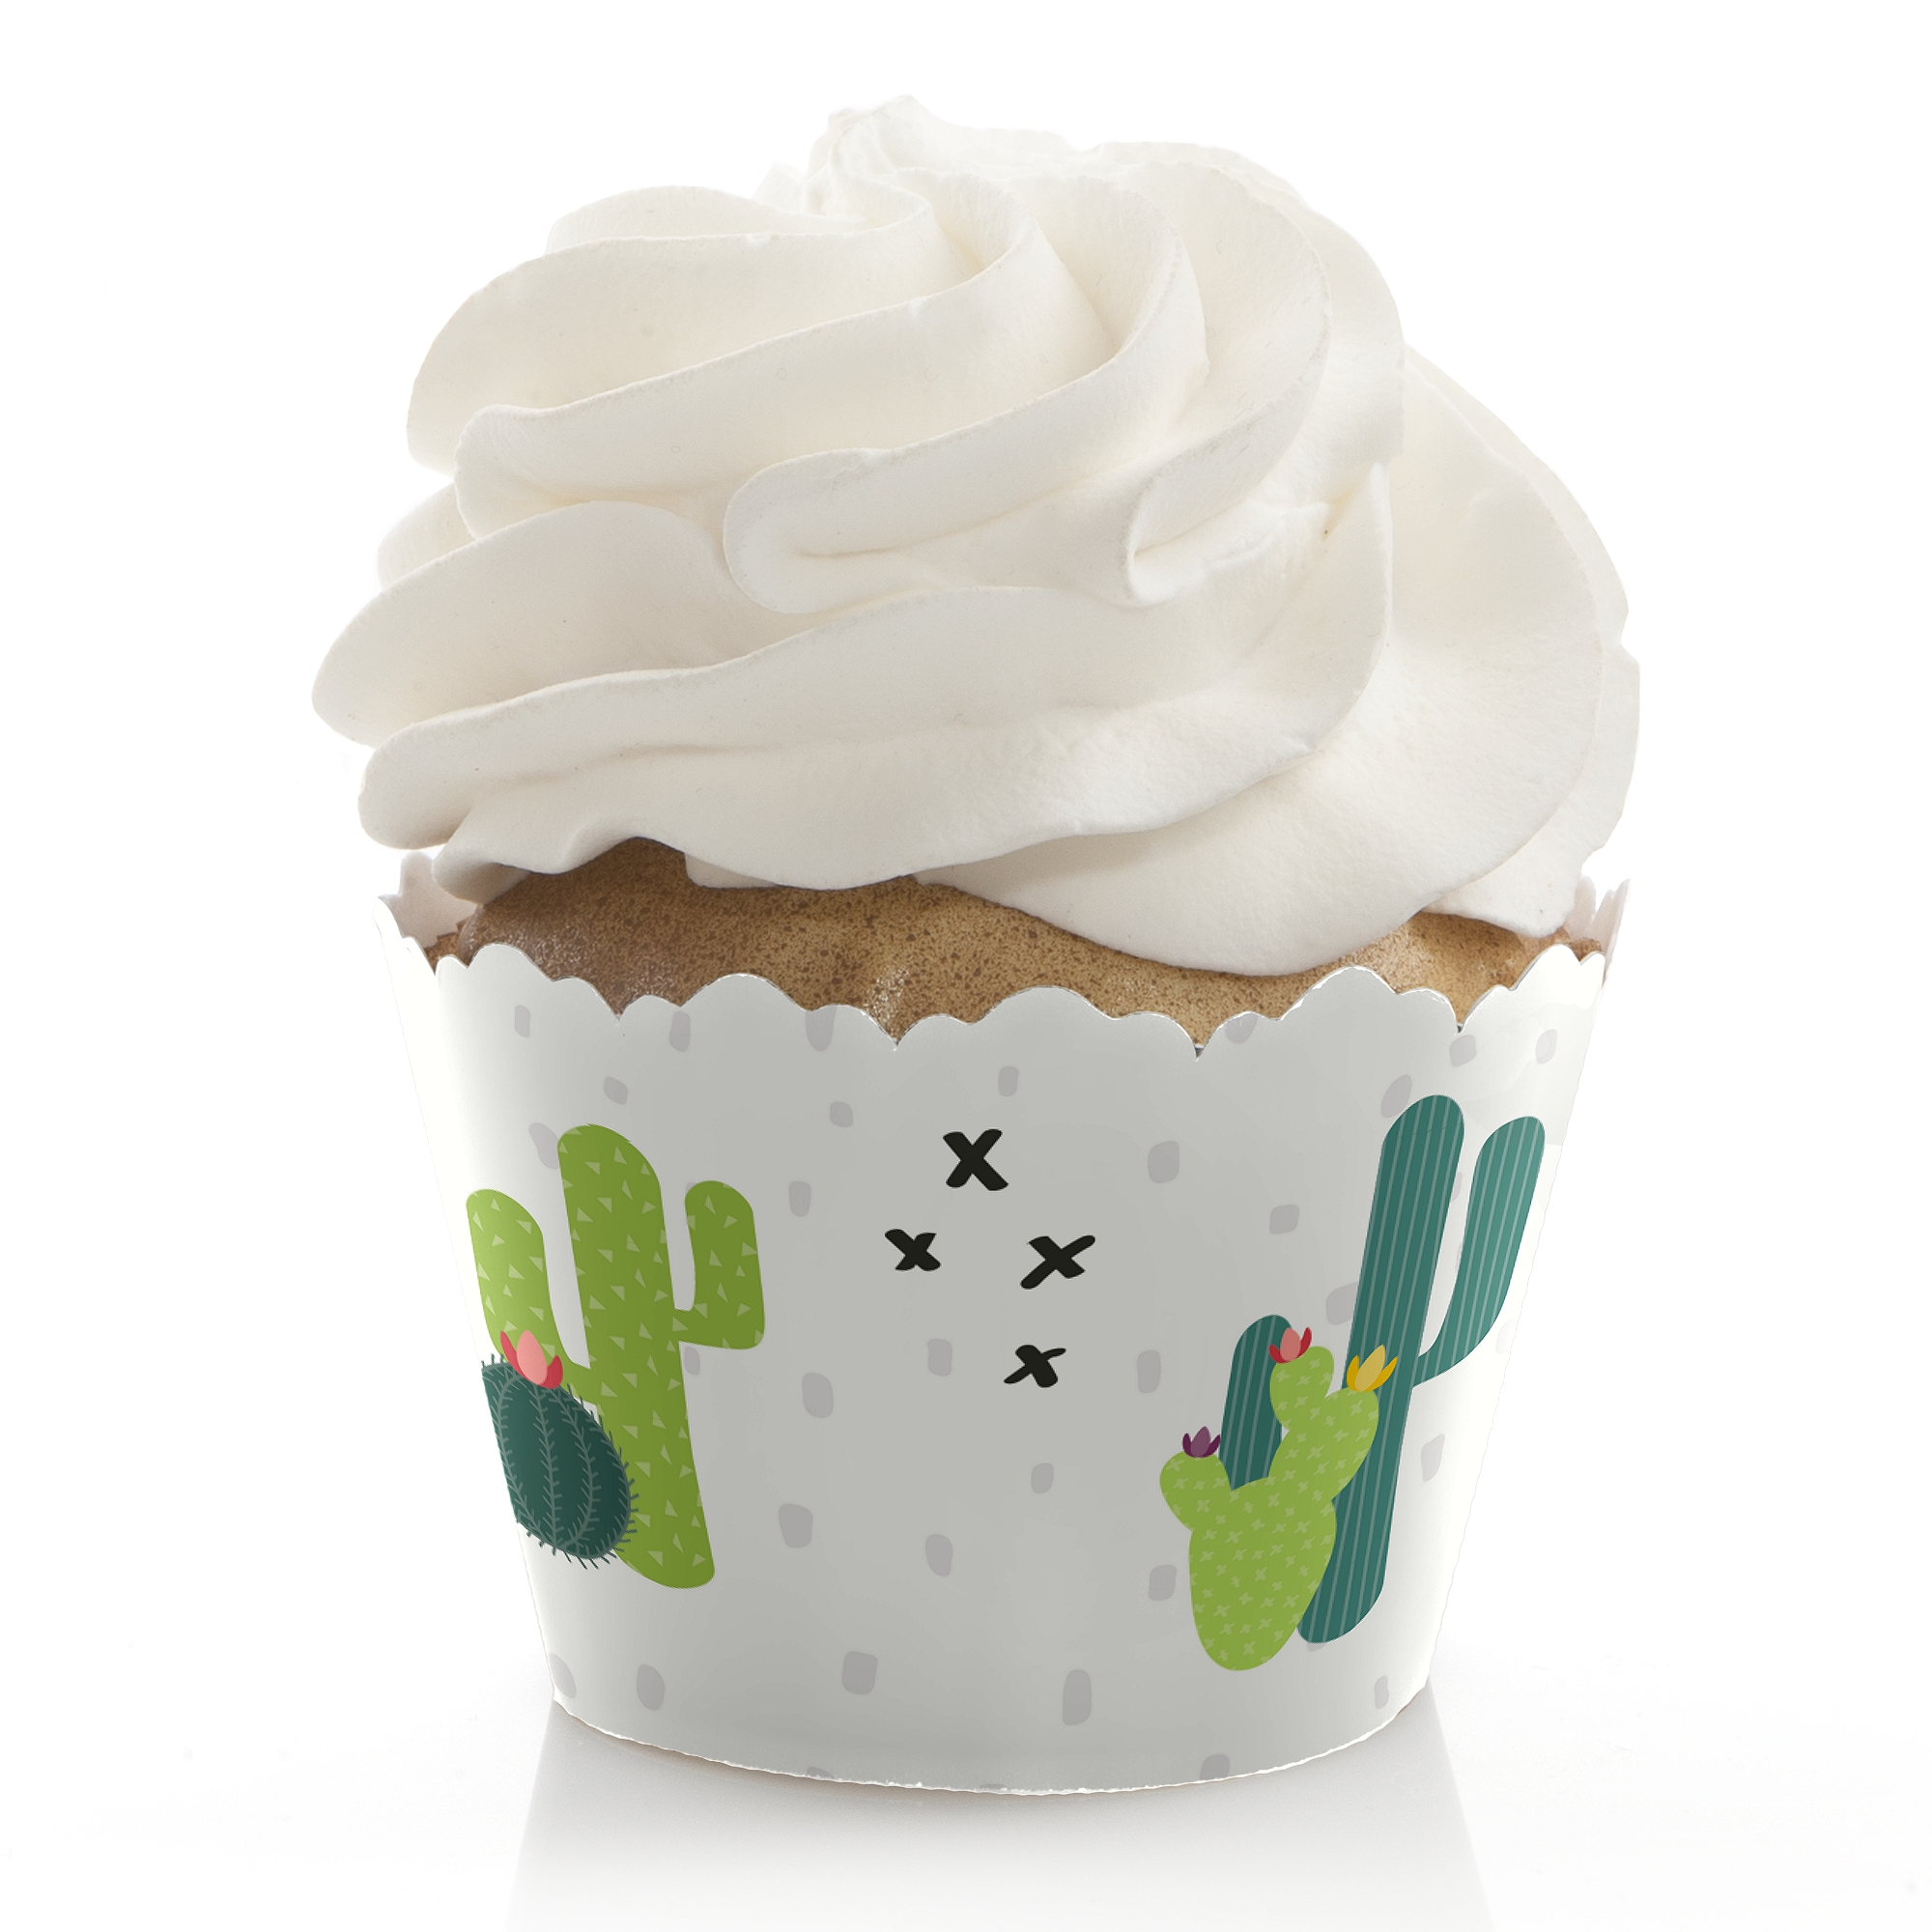 Prickly Cactus Party - Fiesta Party Cupcake Wrappers - Set of 12